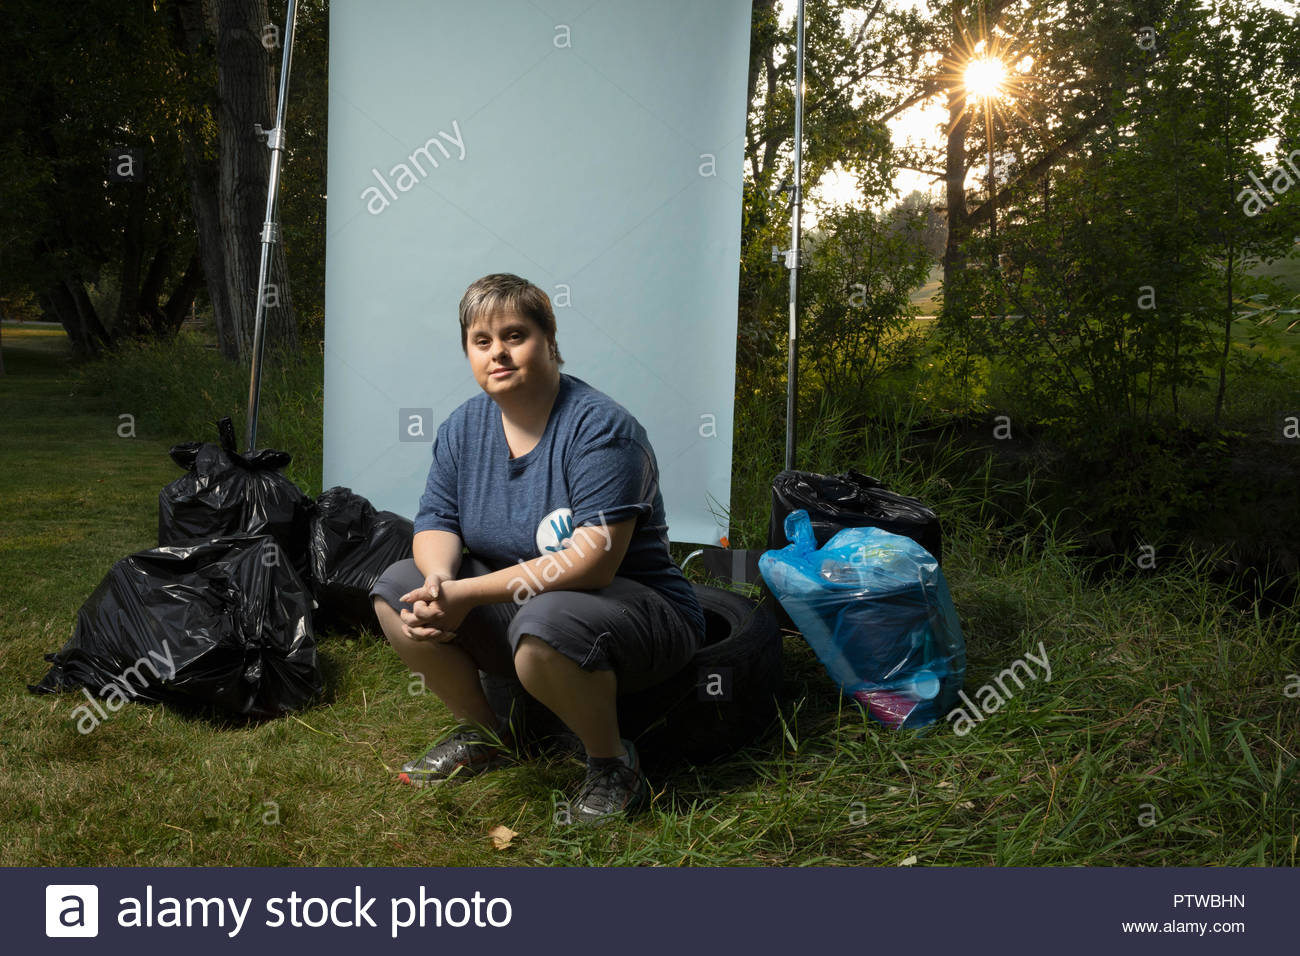 Portrait confident woman with down syndrome volunteering, cleaning